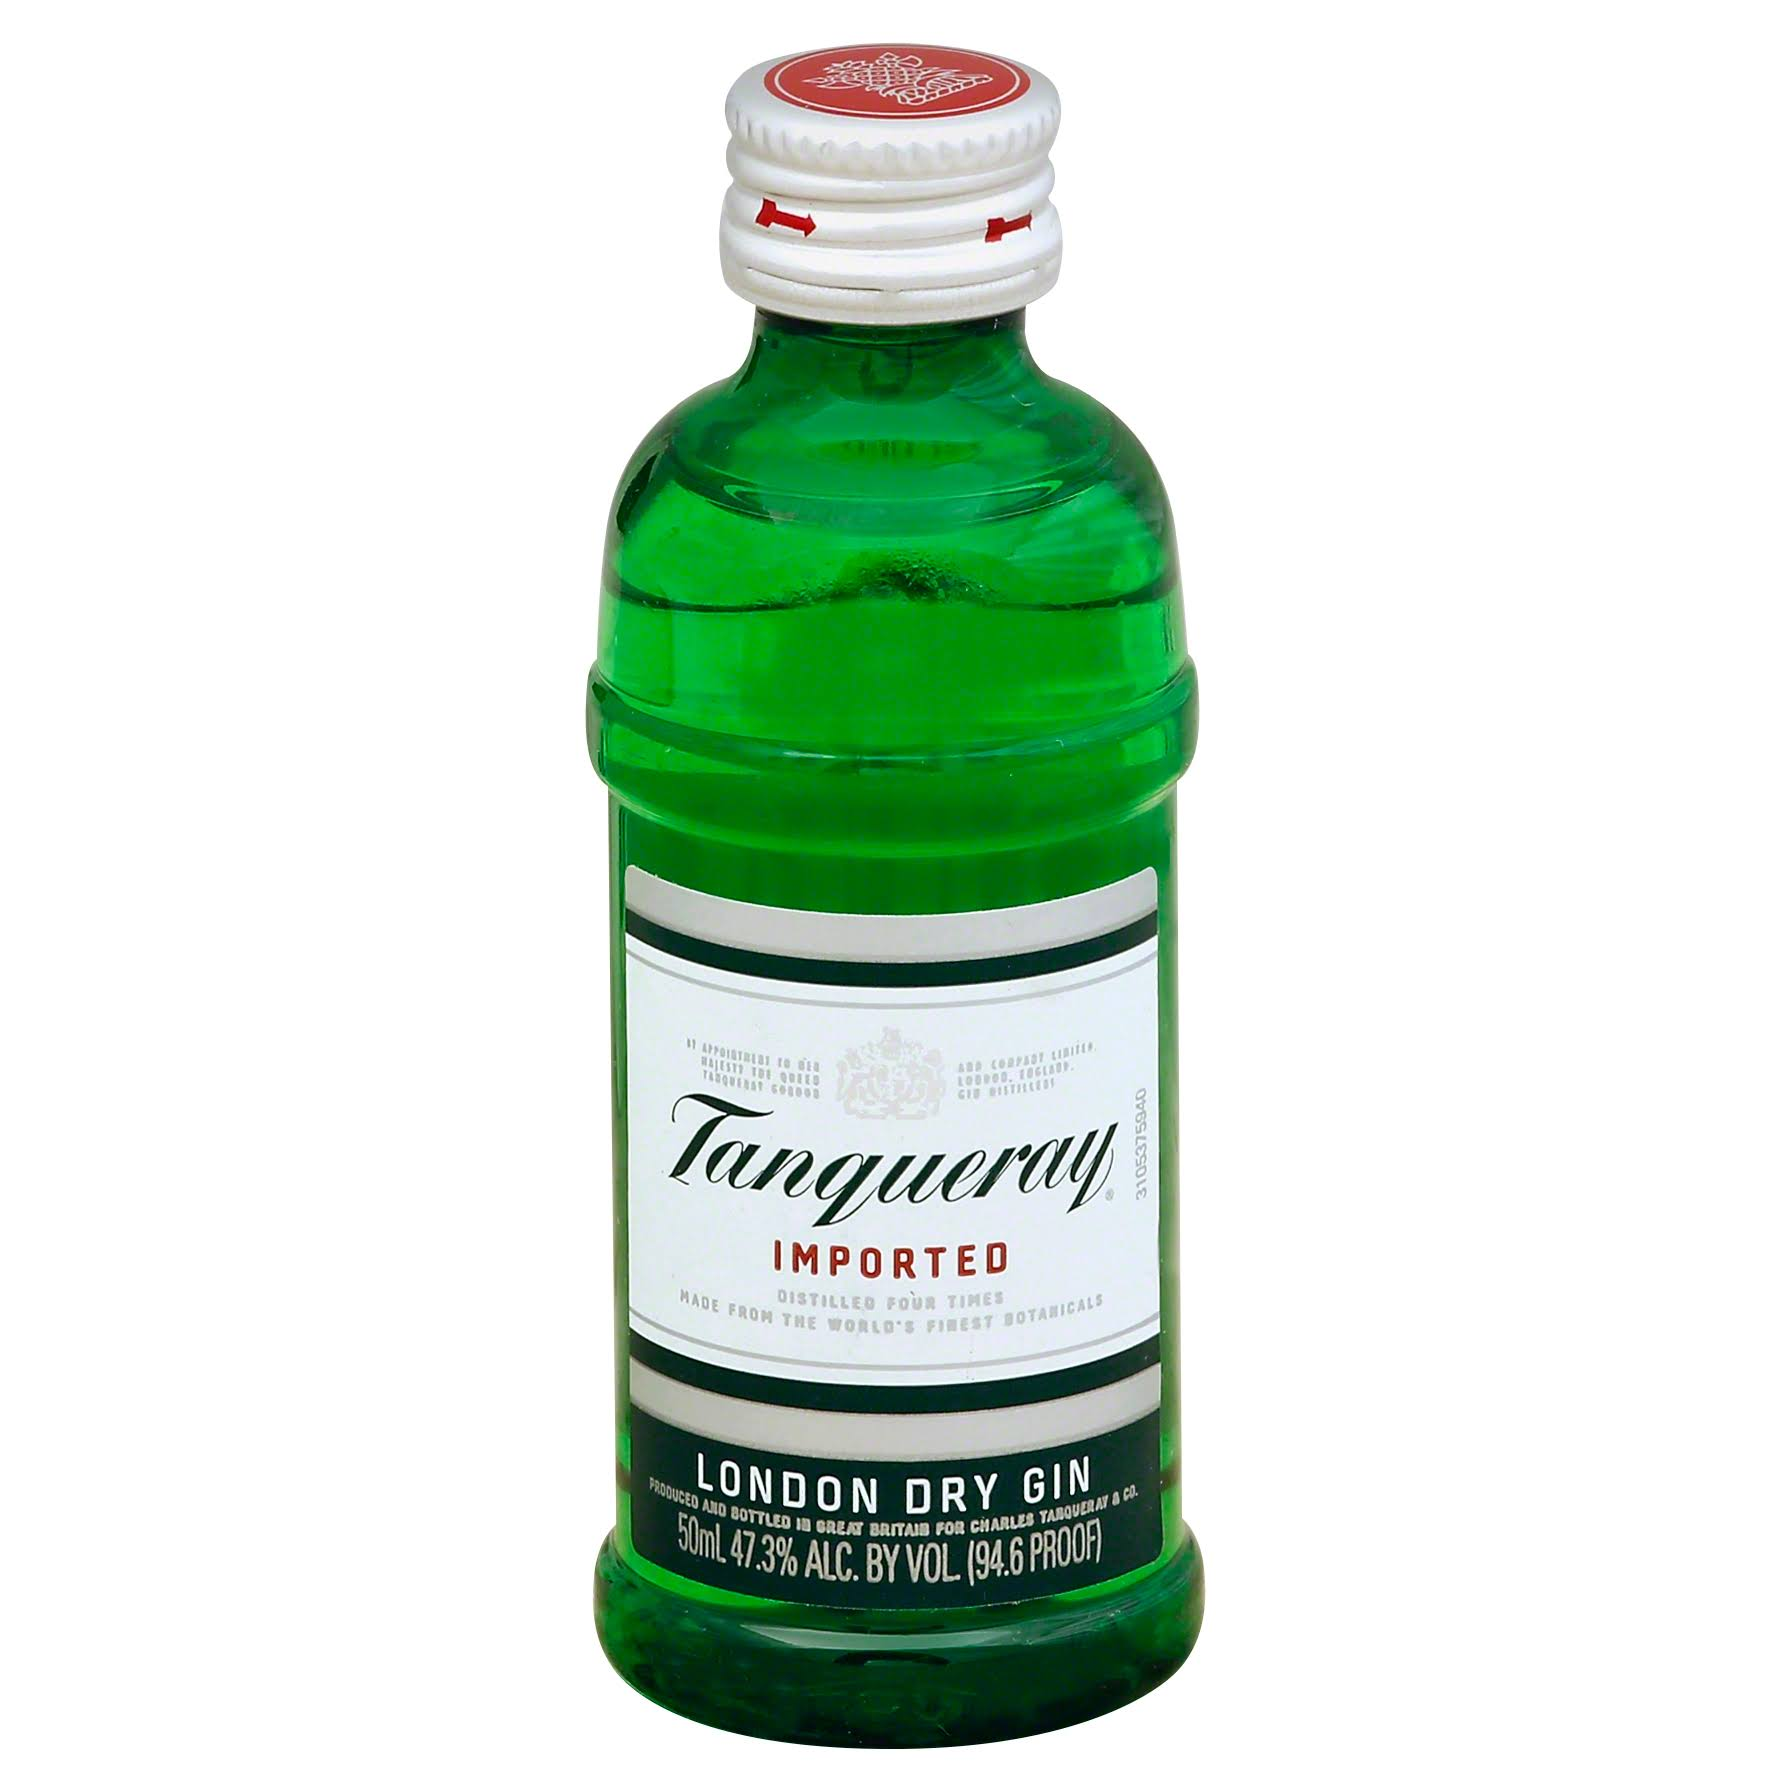 Tanqueray London Dry Gin - 50 ml bottle